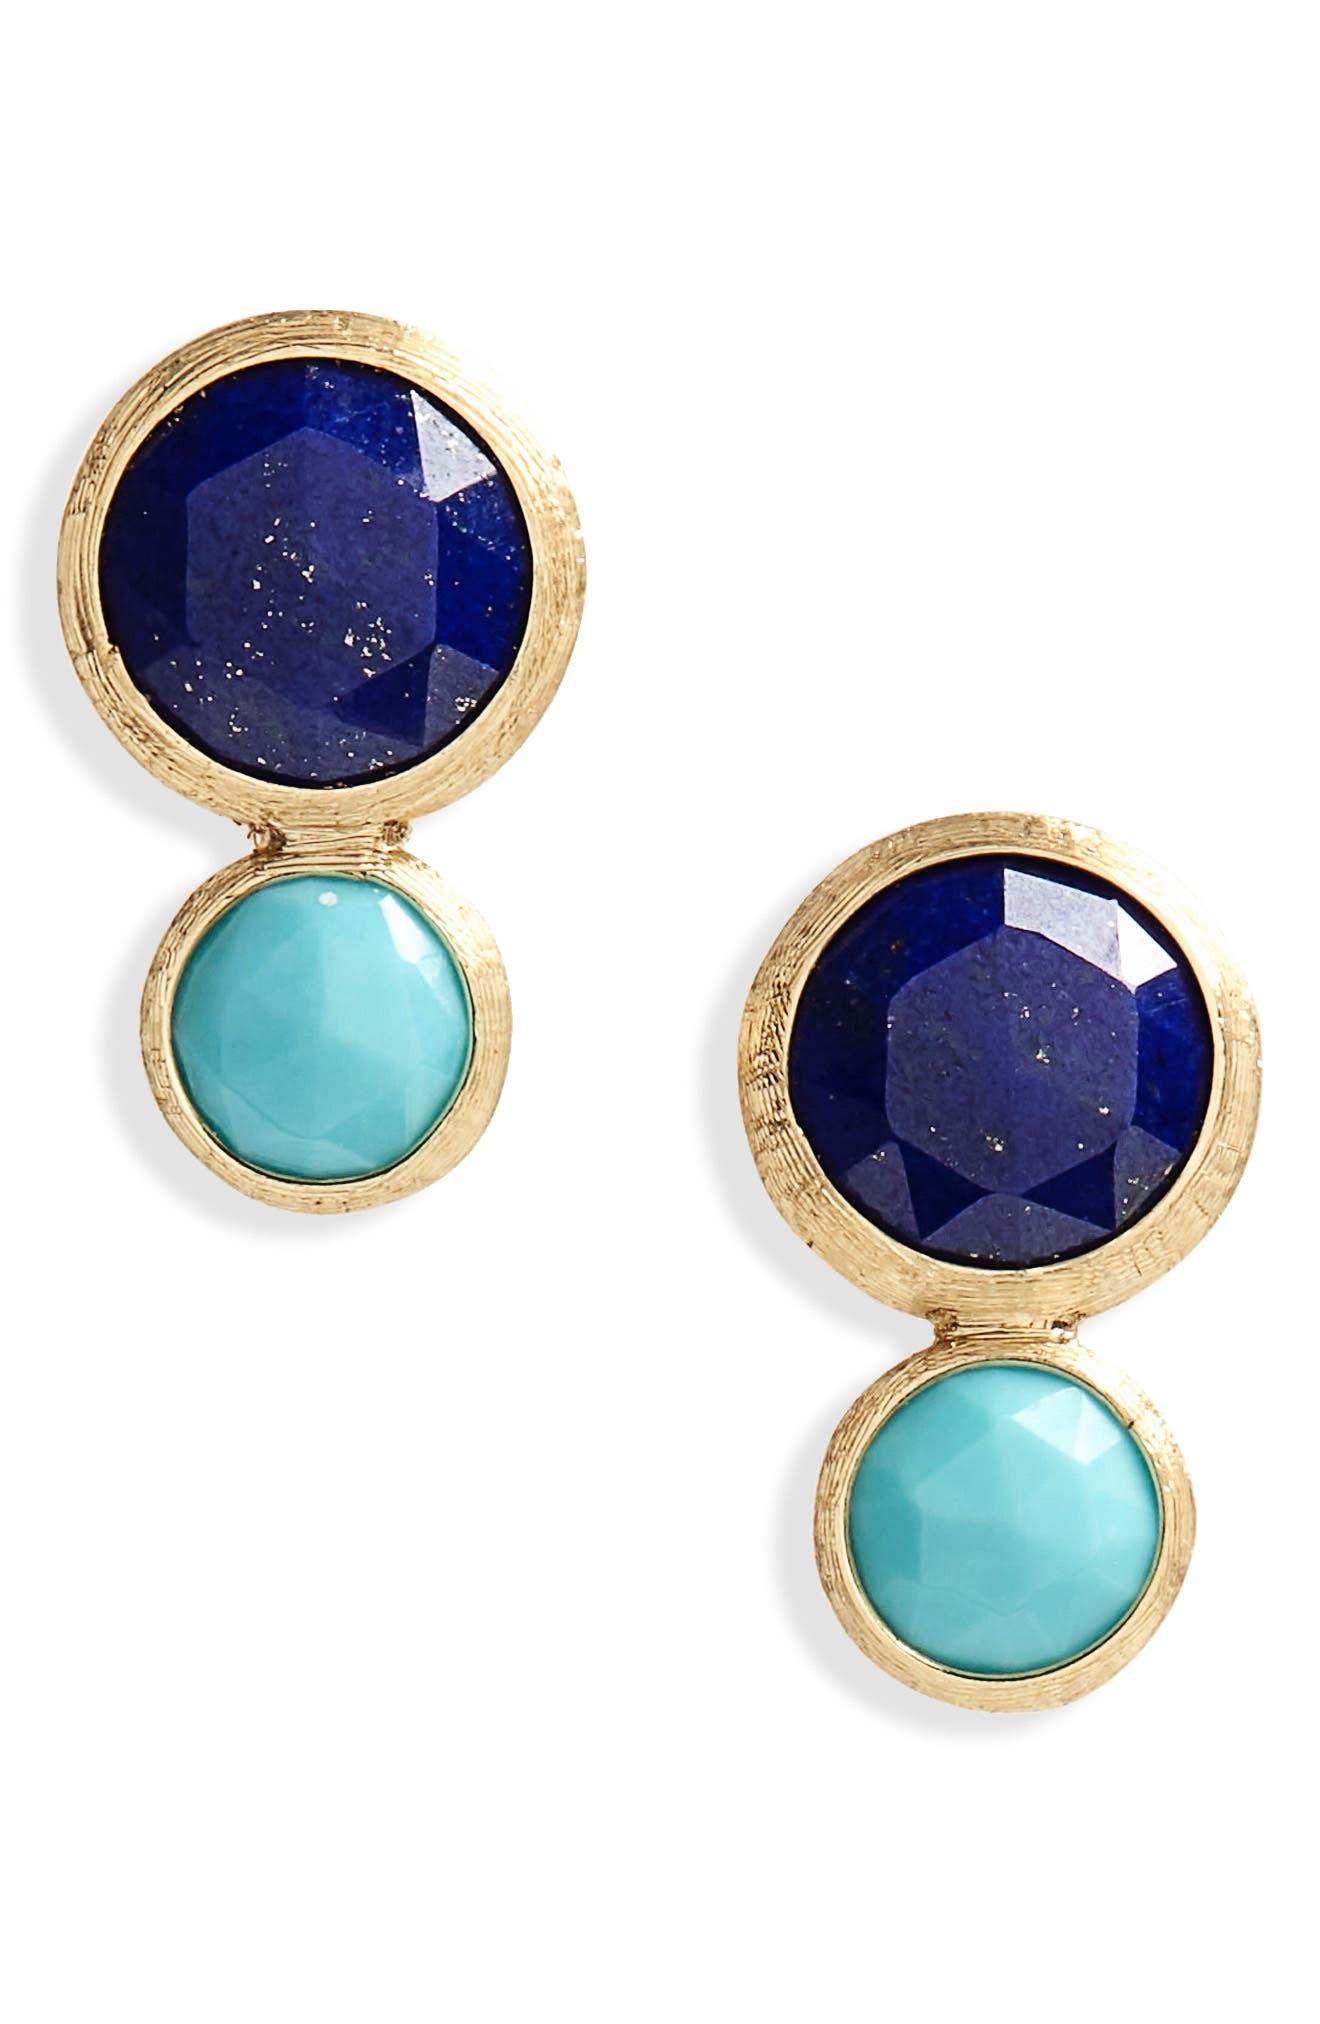 Jaipur Lapis & Turquoise Stud Earrings,                             Main thumbnail 1, color,                             YELLOW GOLD LAPIS/ TURQUOISE